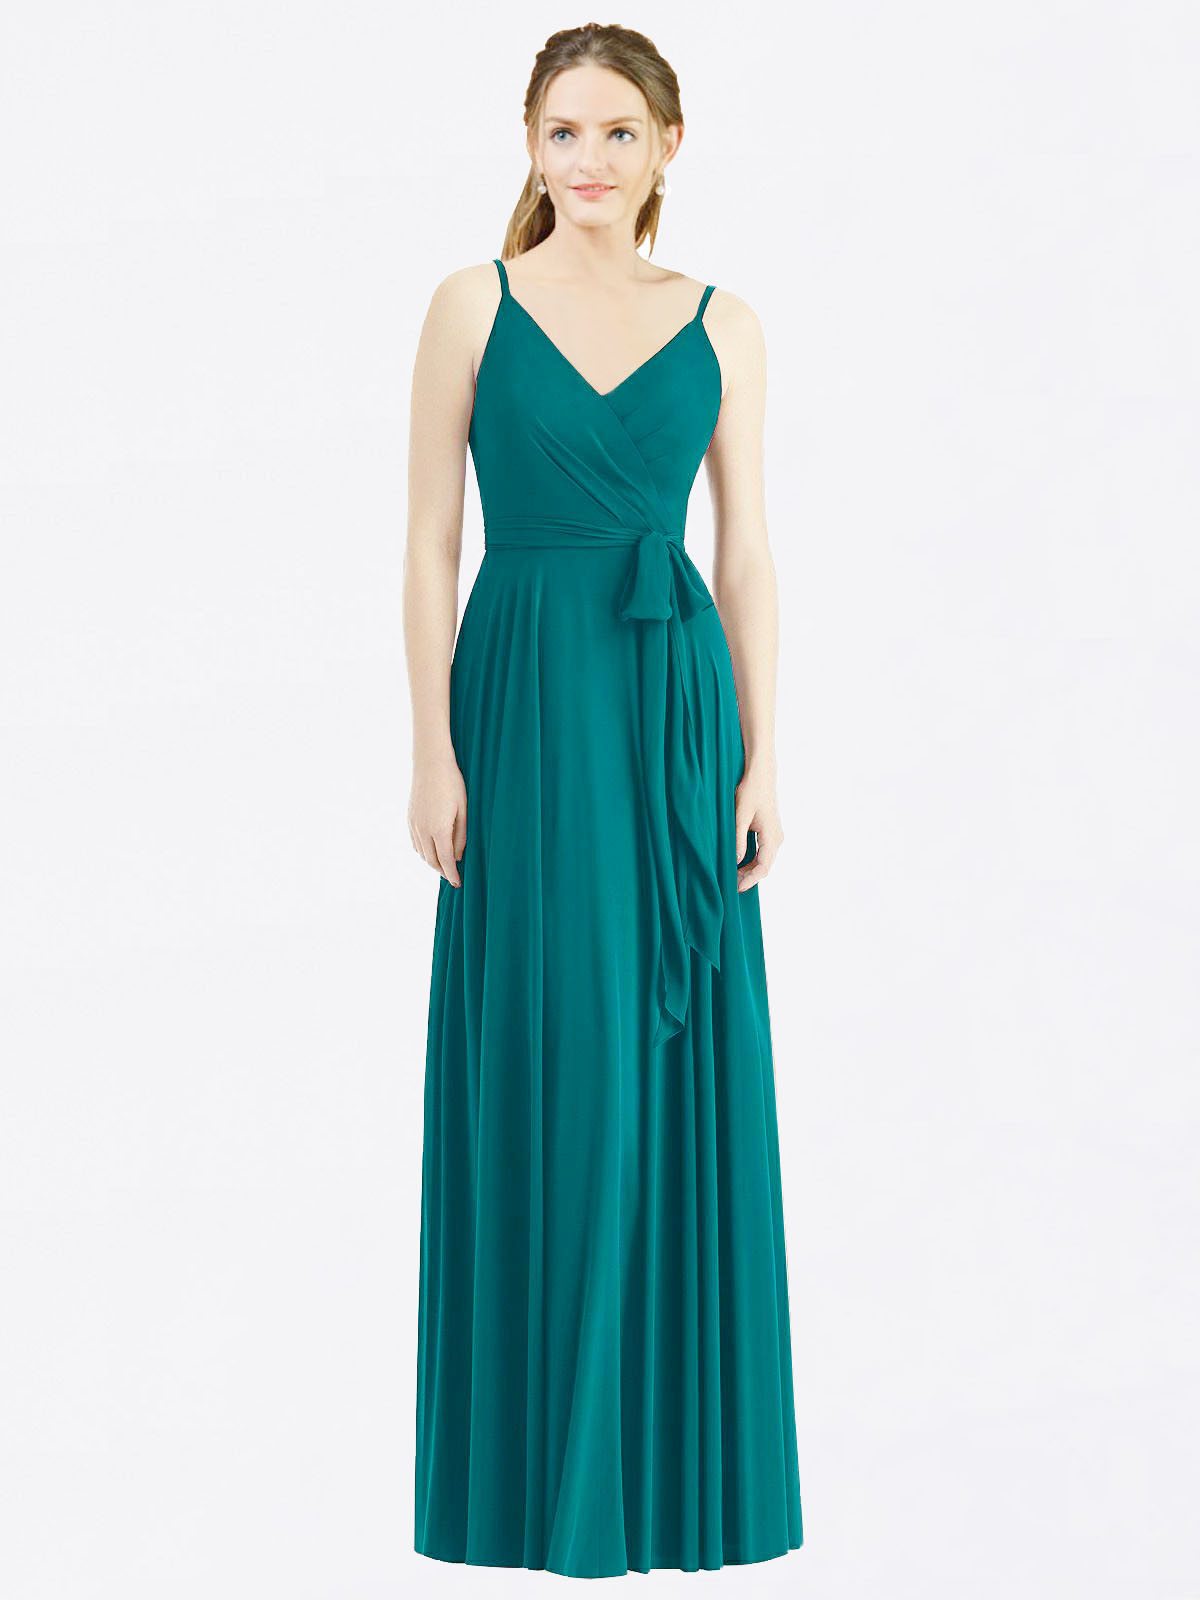 Long A-Line Spaghetti Straps, V-Neck Sleeveless Hunter Chiffon Bridesmaid Dress Madilyn